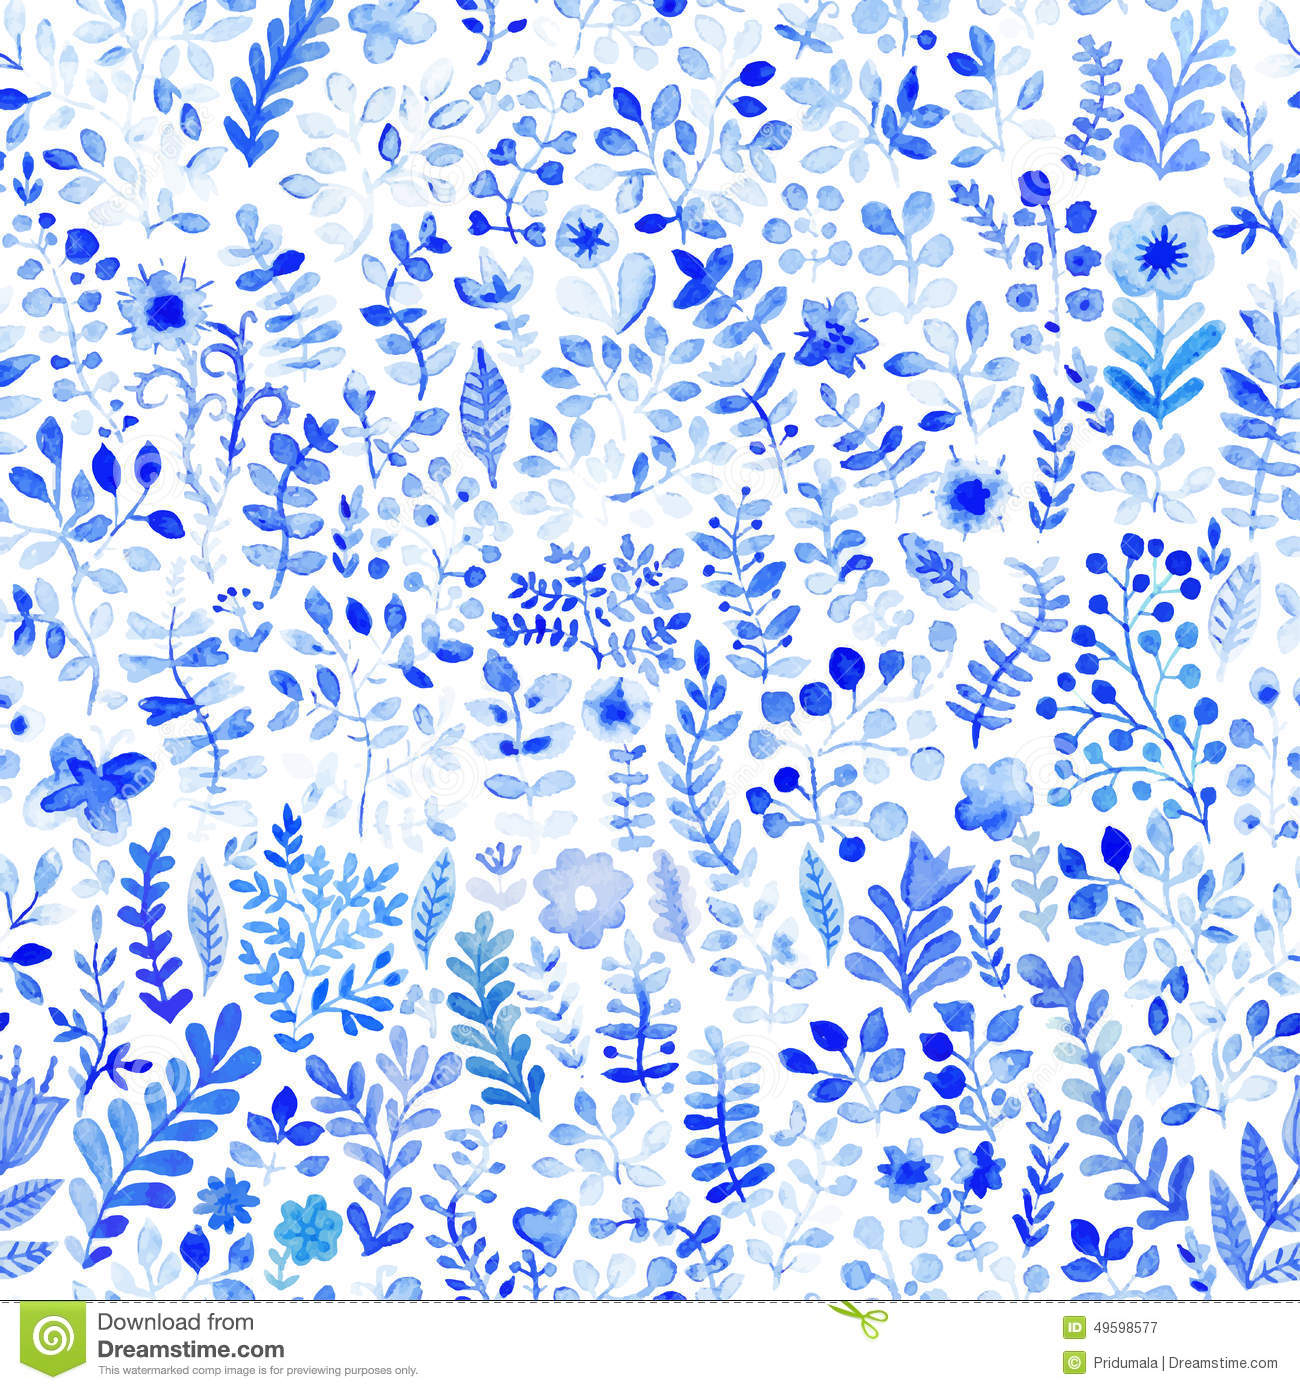 texture background patterns flowers - photo #40